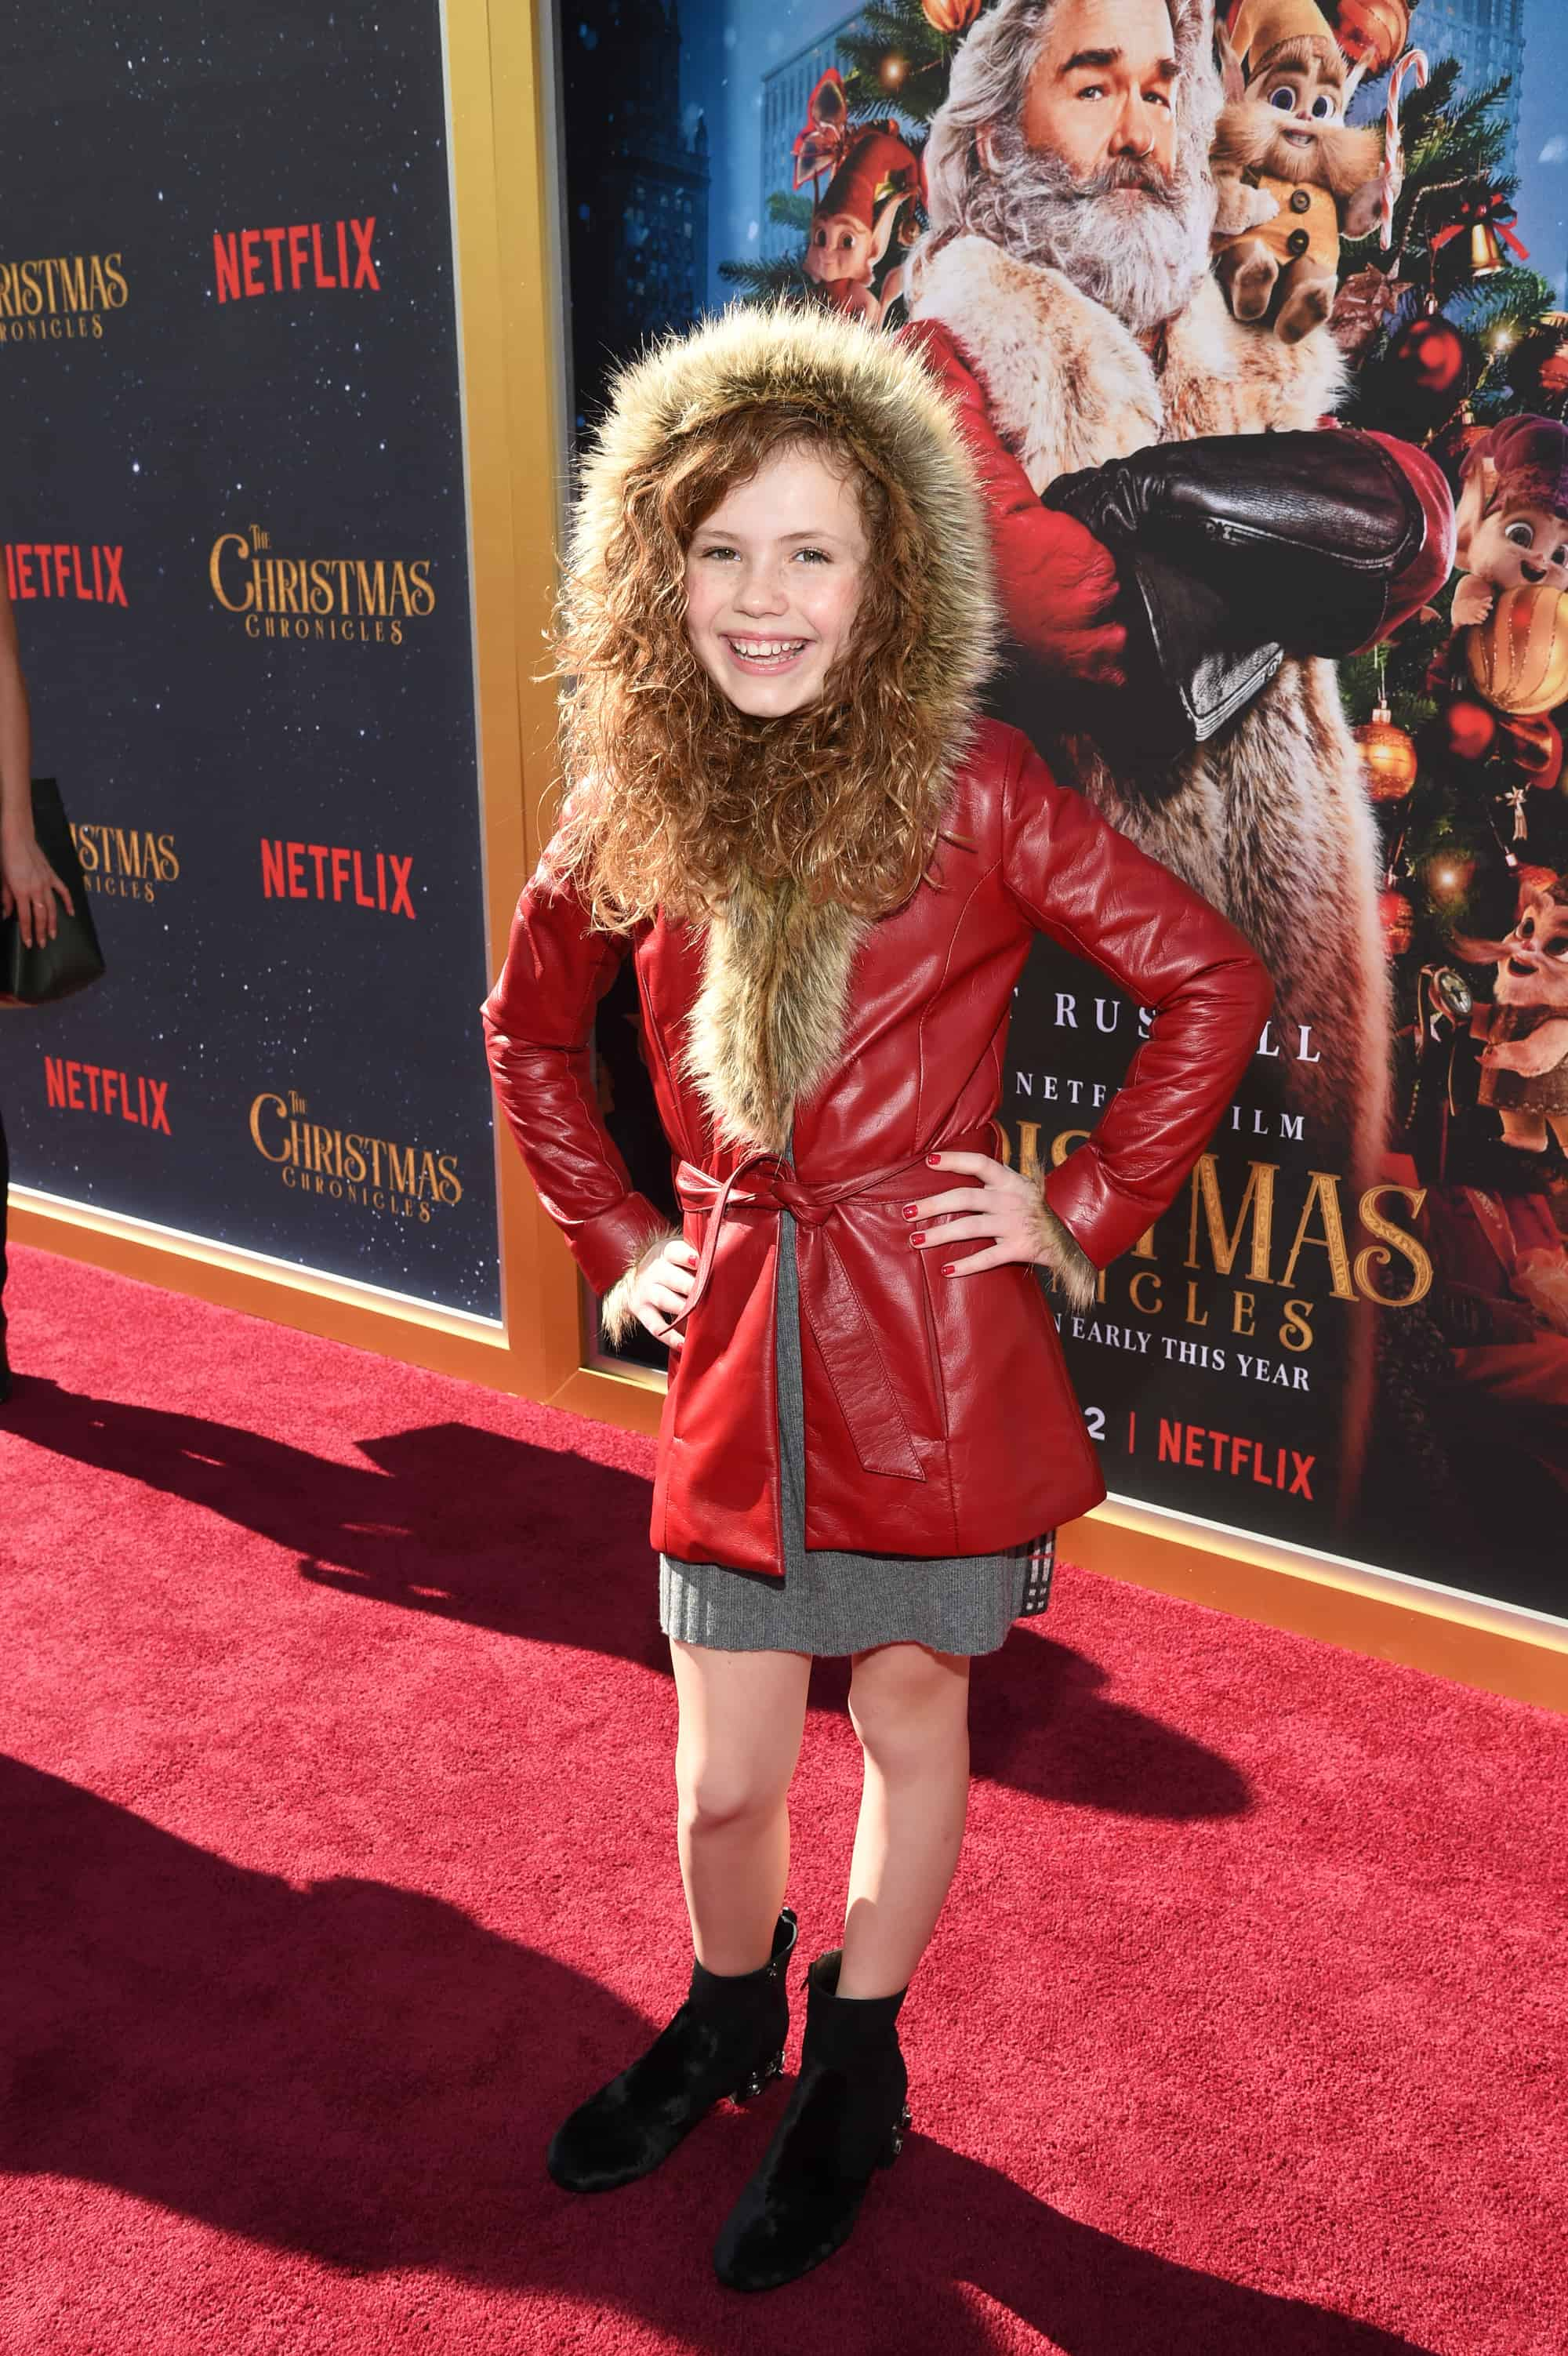 The Christmas Chronicles 2.The Christmas Chronicles Premiere In Los Angeles The